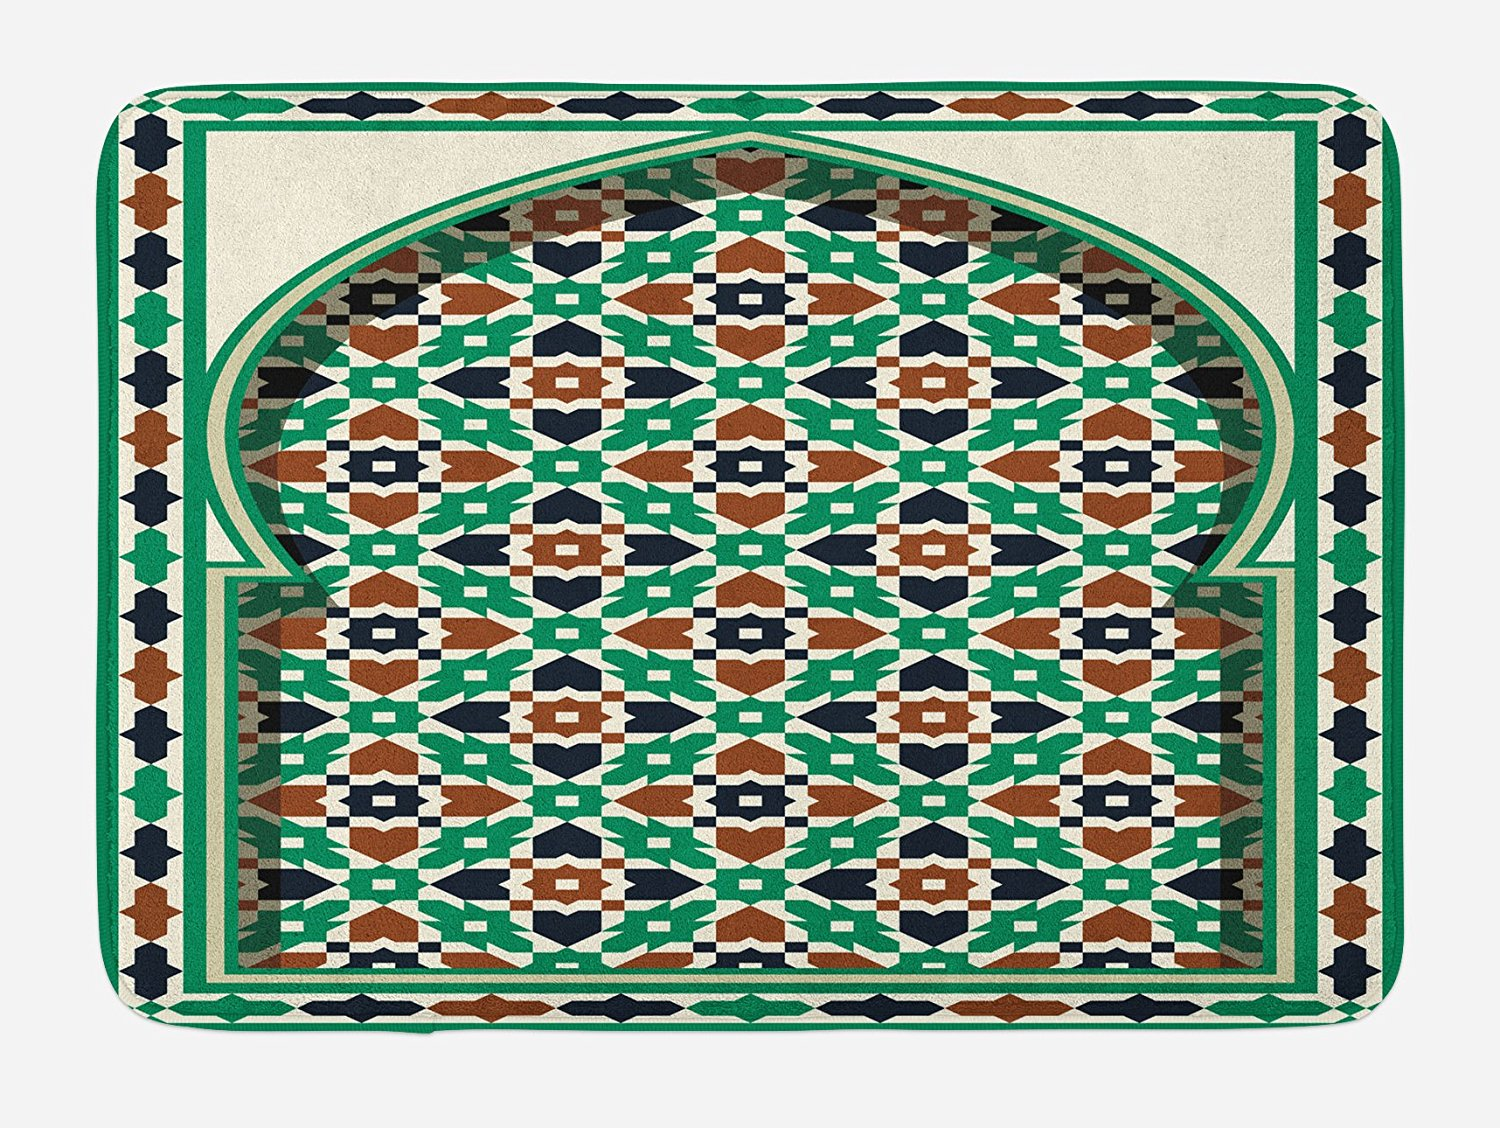 Moroccan Bath Mat by Ambesonne, Middle Eastern Style Moroccan Arch with Medieval Floral Details Retro Mosque, Plush Bathroom Decor Mat with Non Slip Backing, 29.5 W X 17.5 W Inches, Green Brown